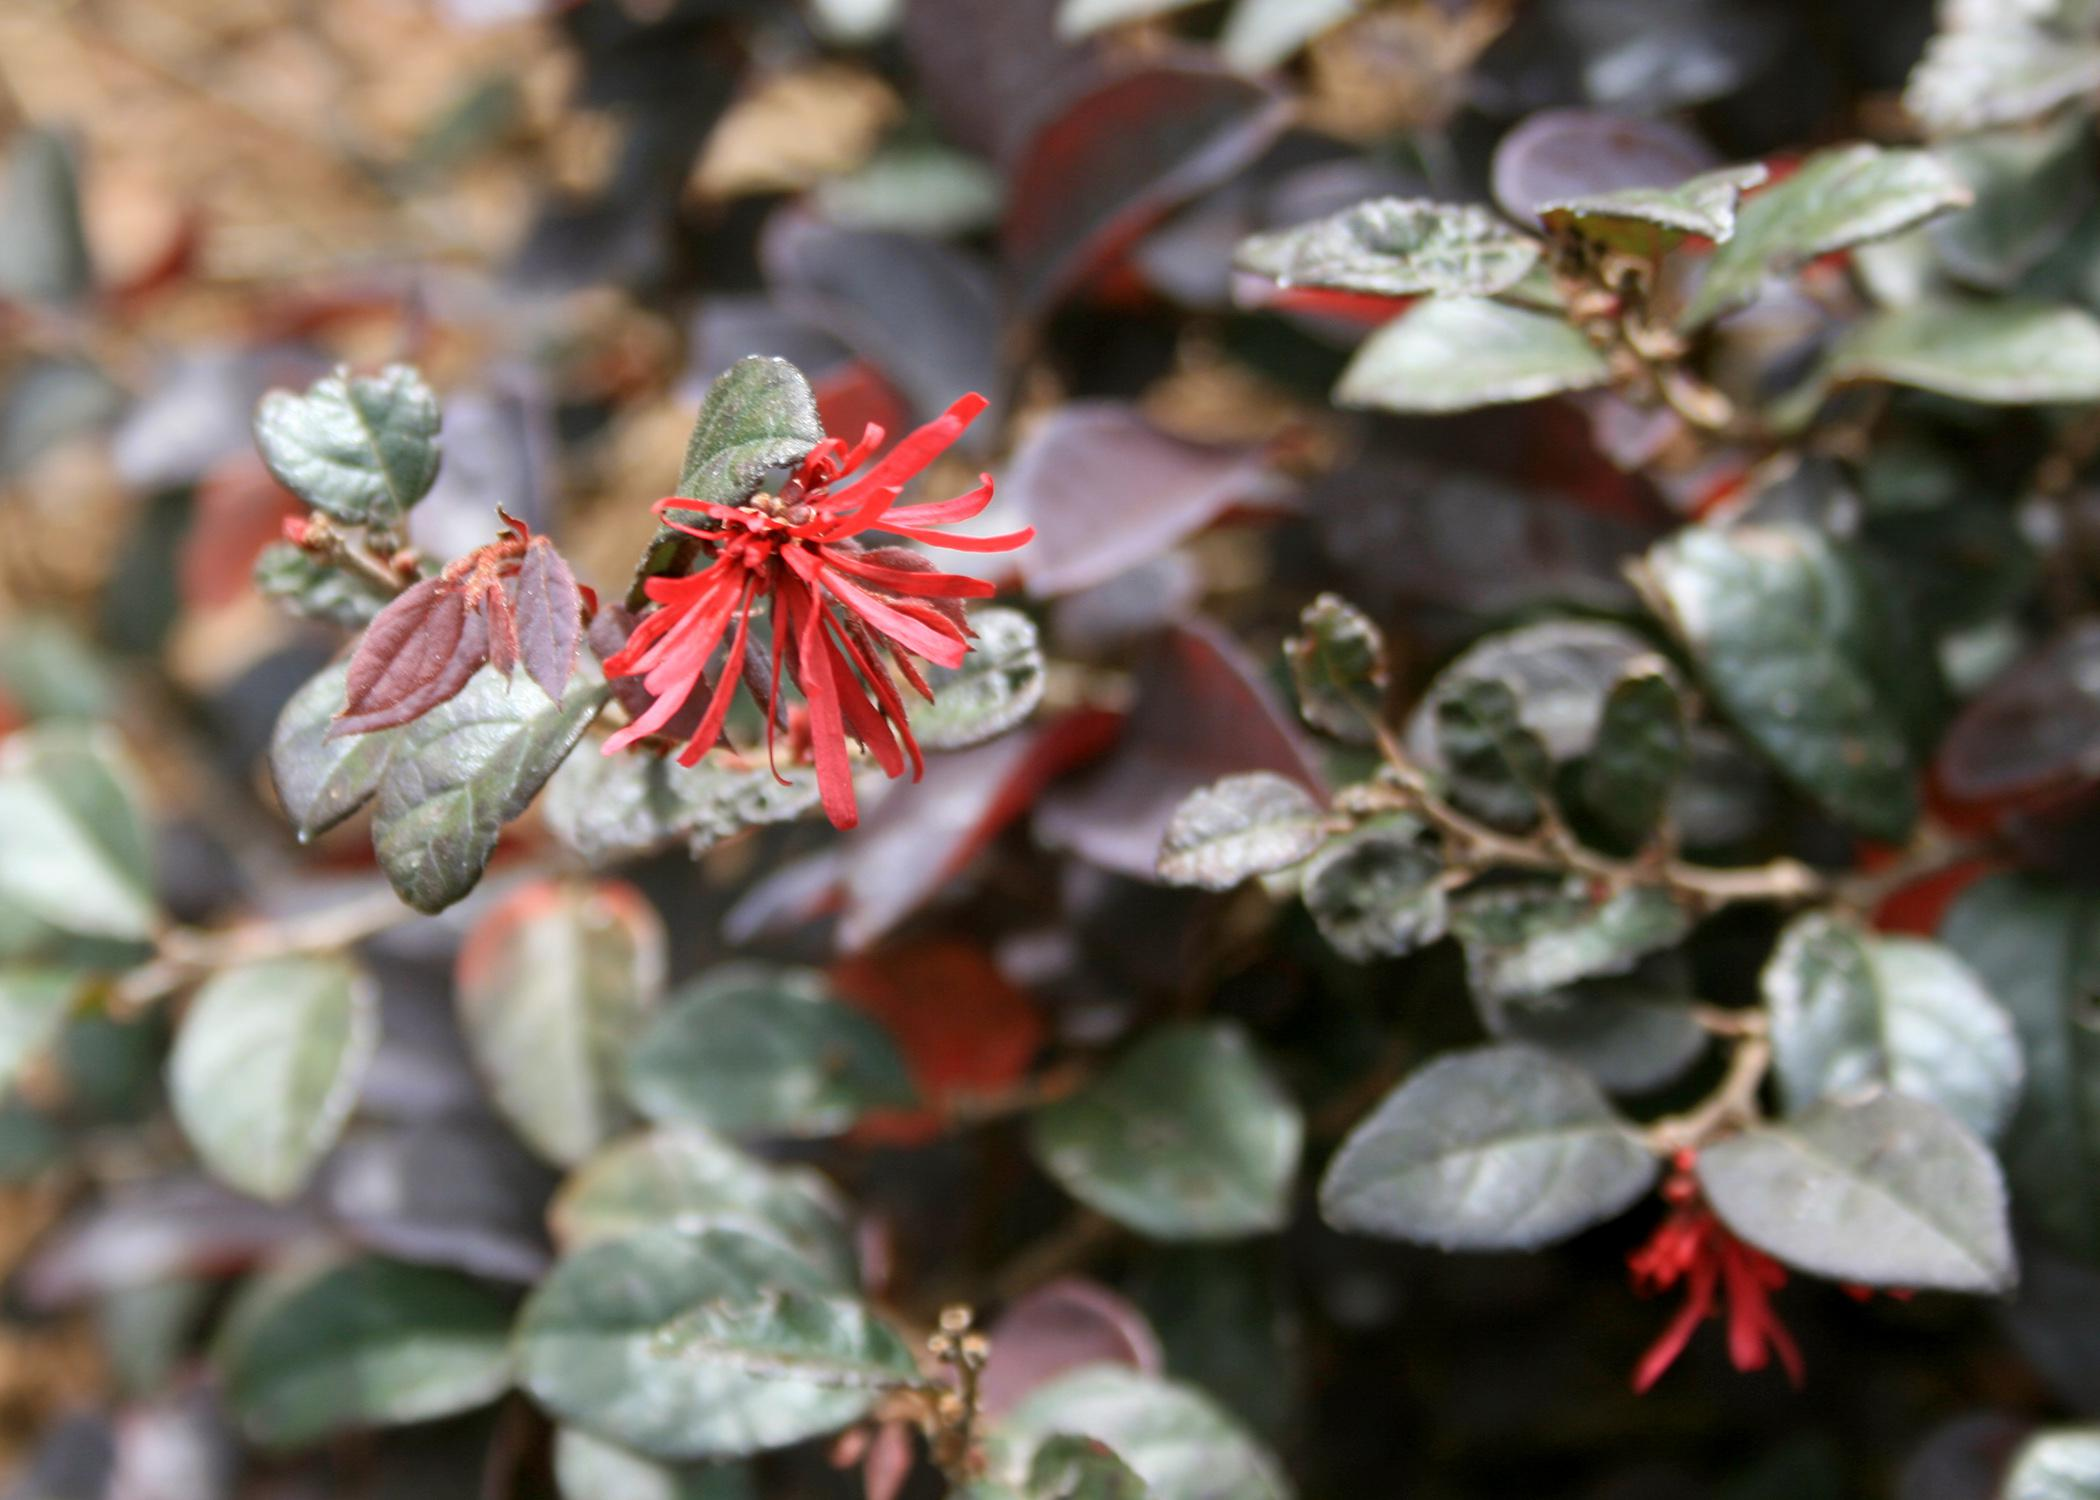 The strap-like flowers of loropetalum are reminiscent of witch hazel flowers. They bloom in early spring and sporadically through the rest of the summer. (Photo by MSU Extension Service/Gary Bachman)